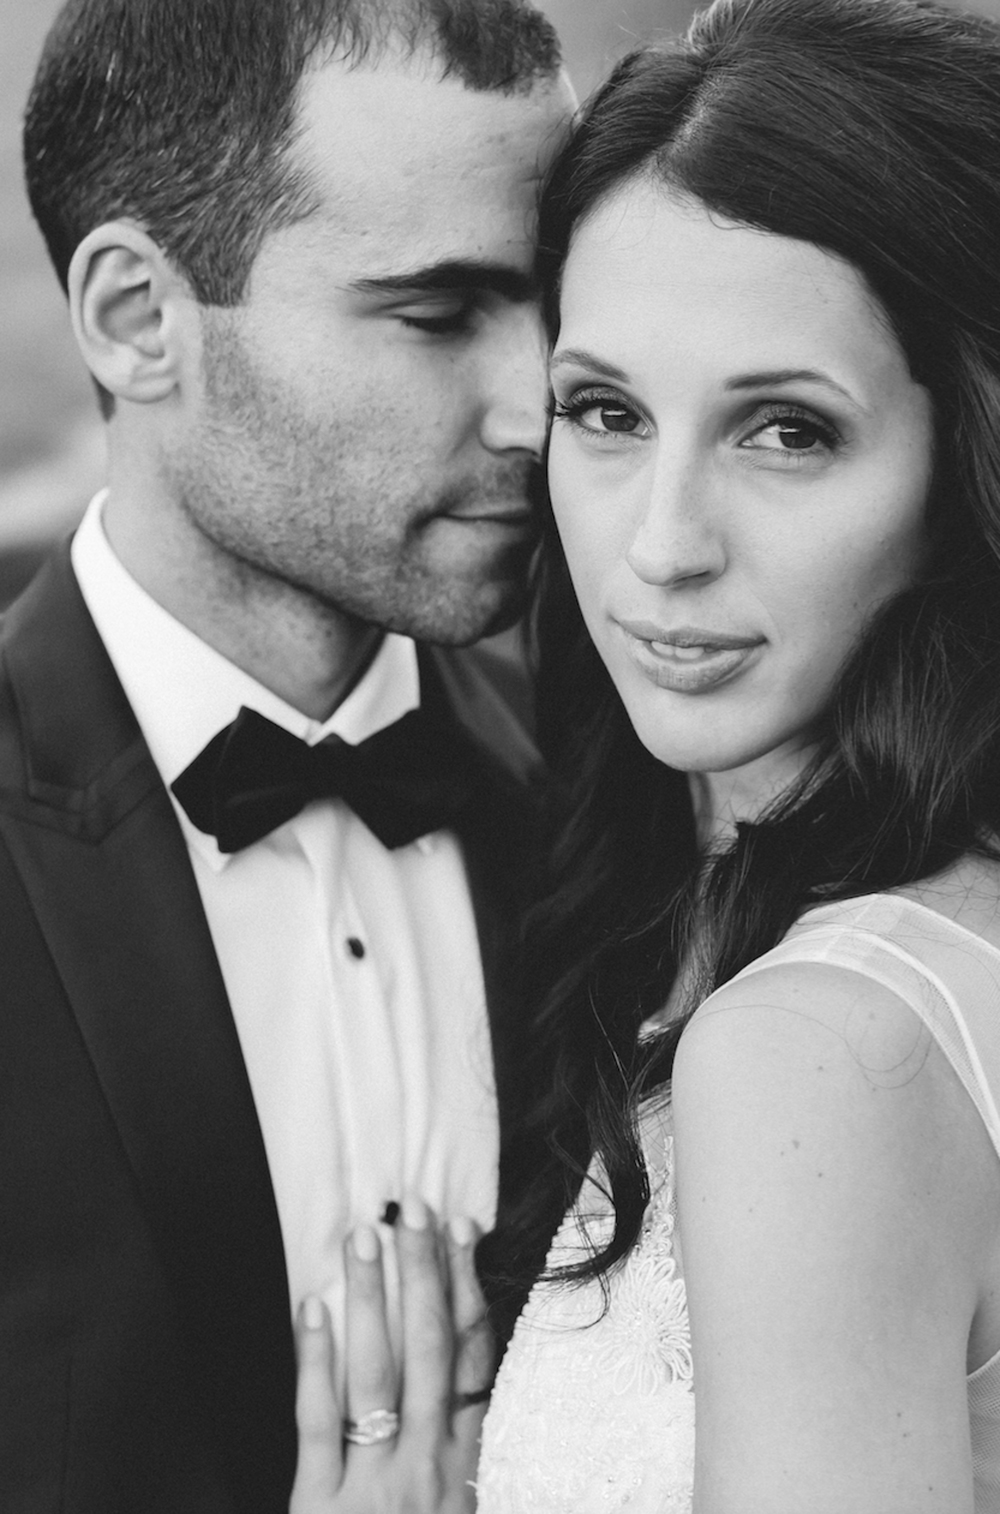 Hailley+Howard+Photography_Palm+Springs+Wedding_Avalon+Hotel+Palm+Springs_Wedding+Photography-21-6.jpg